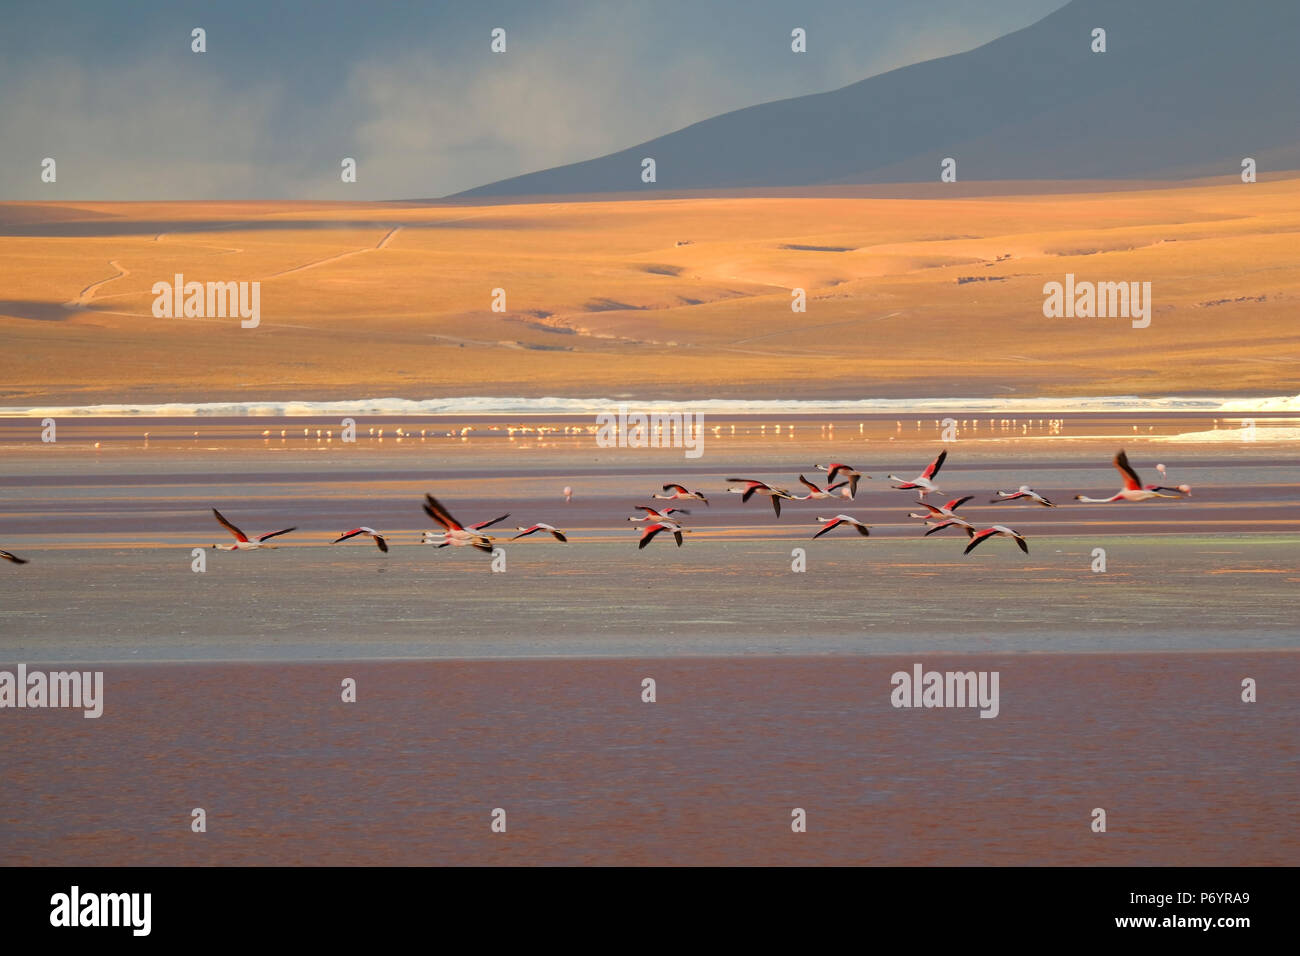 Group of flamingo flying on Laguna Colorada (Red Lagoon), the salt lake at altiplano plateau in Potosi, Bolivia Stock Photo